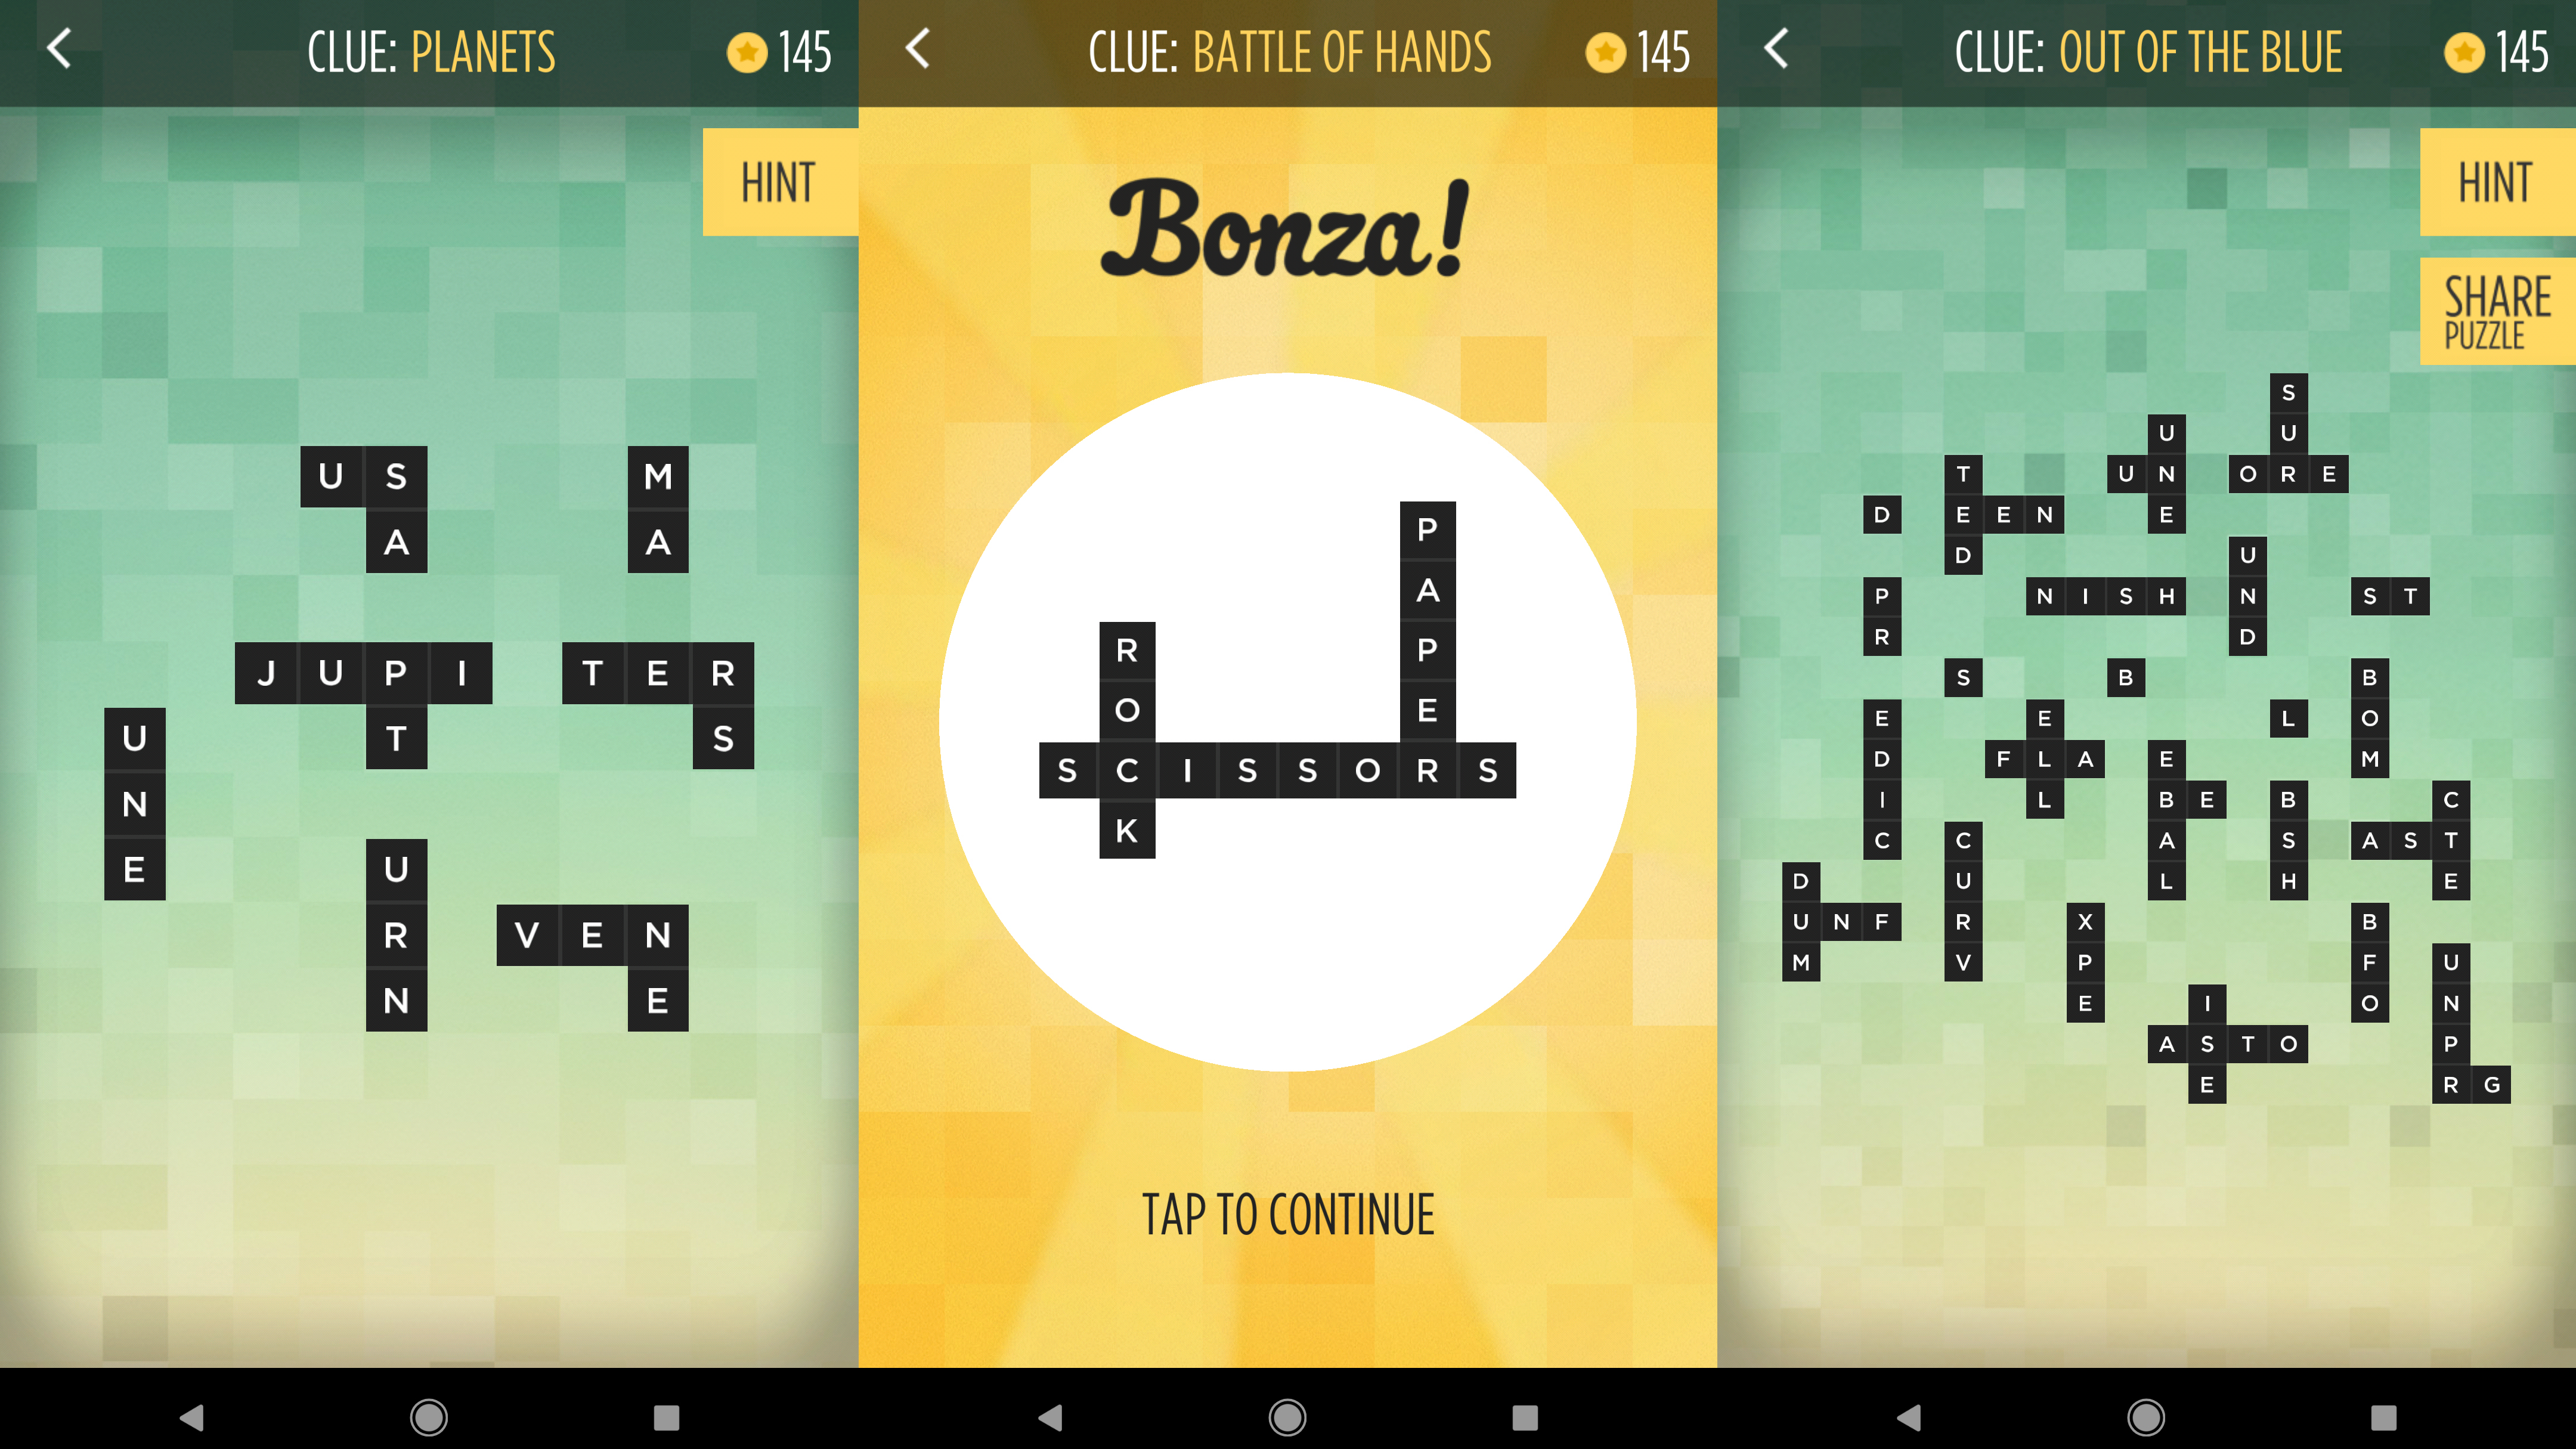 c74rPFBPQ57sHHizyRdwFS - The best free Android games 2018